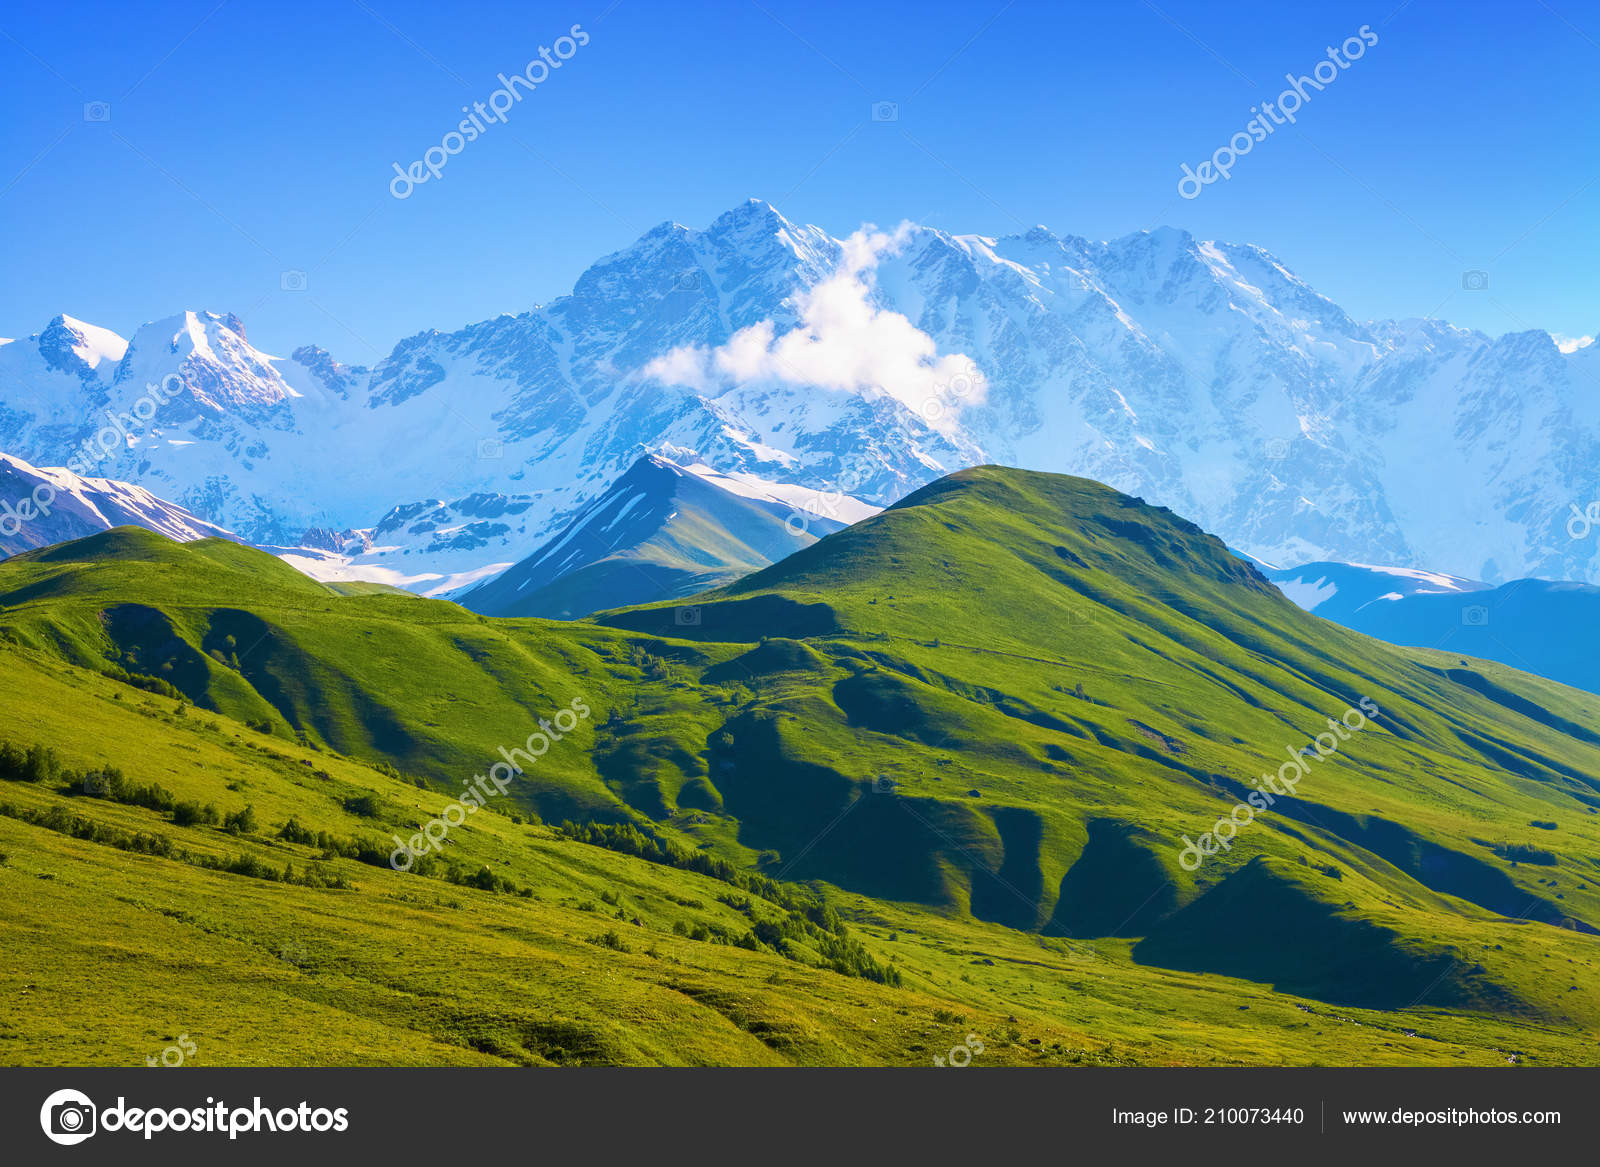 Nice View Landscape High Mountains Sunny Day Opened Green Valley Stock Photo Image By C Vitalii Mamchuk 210073440